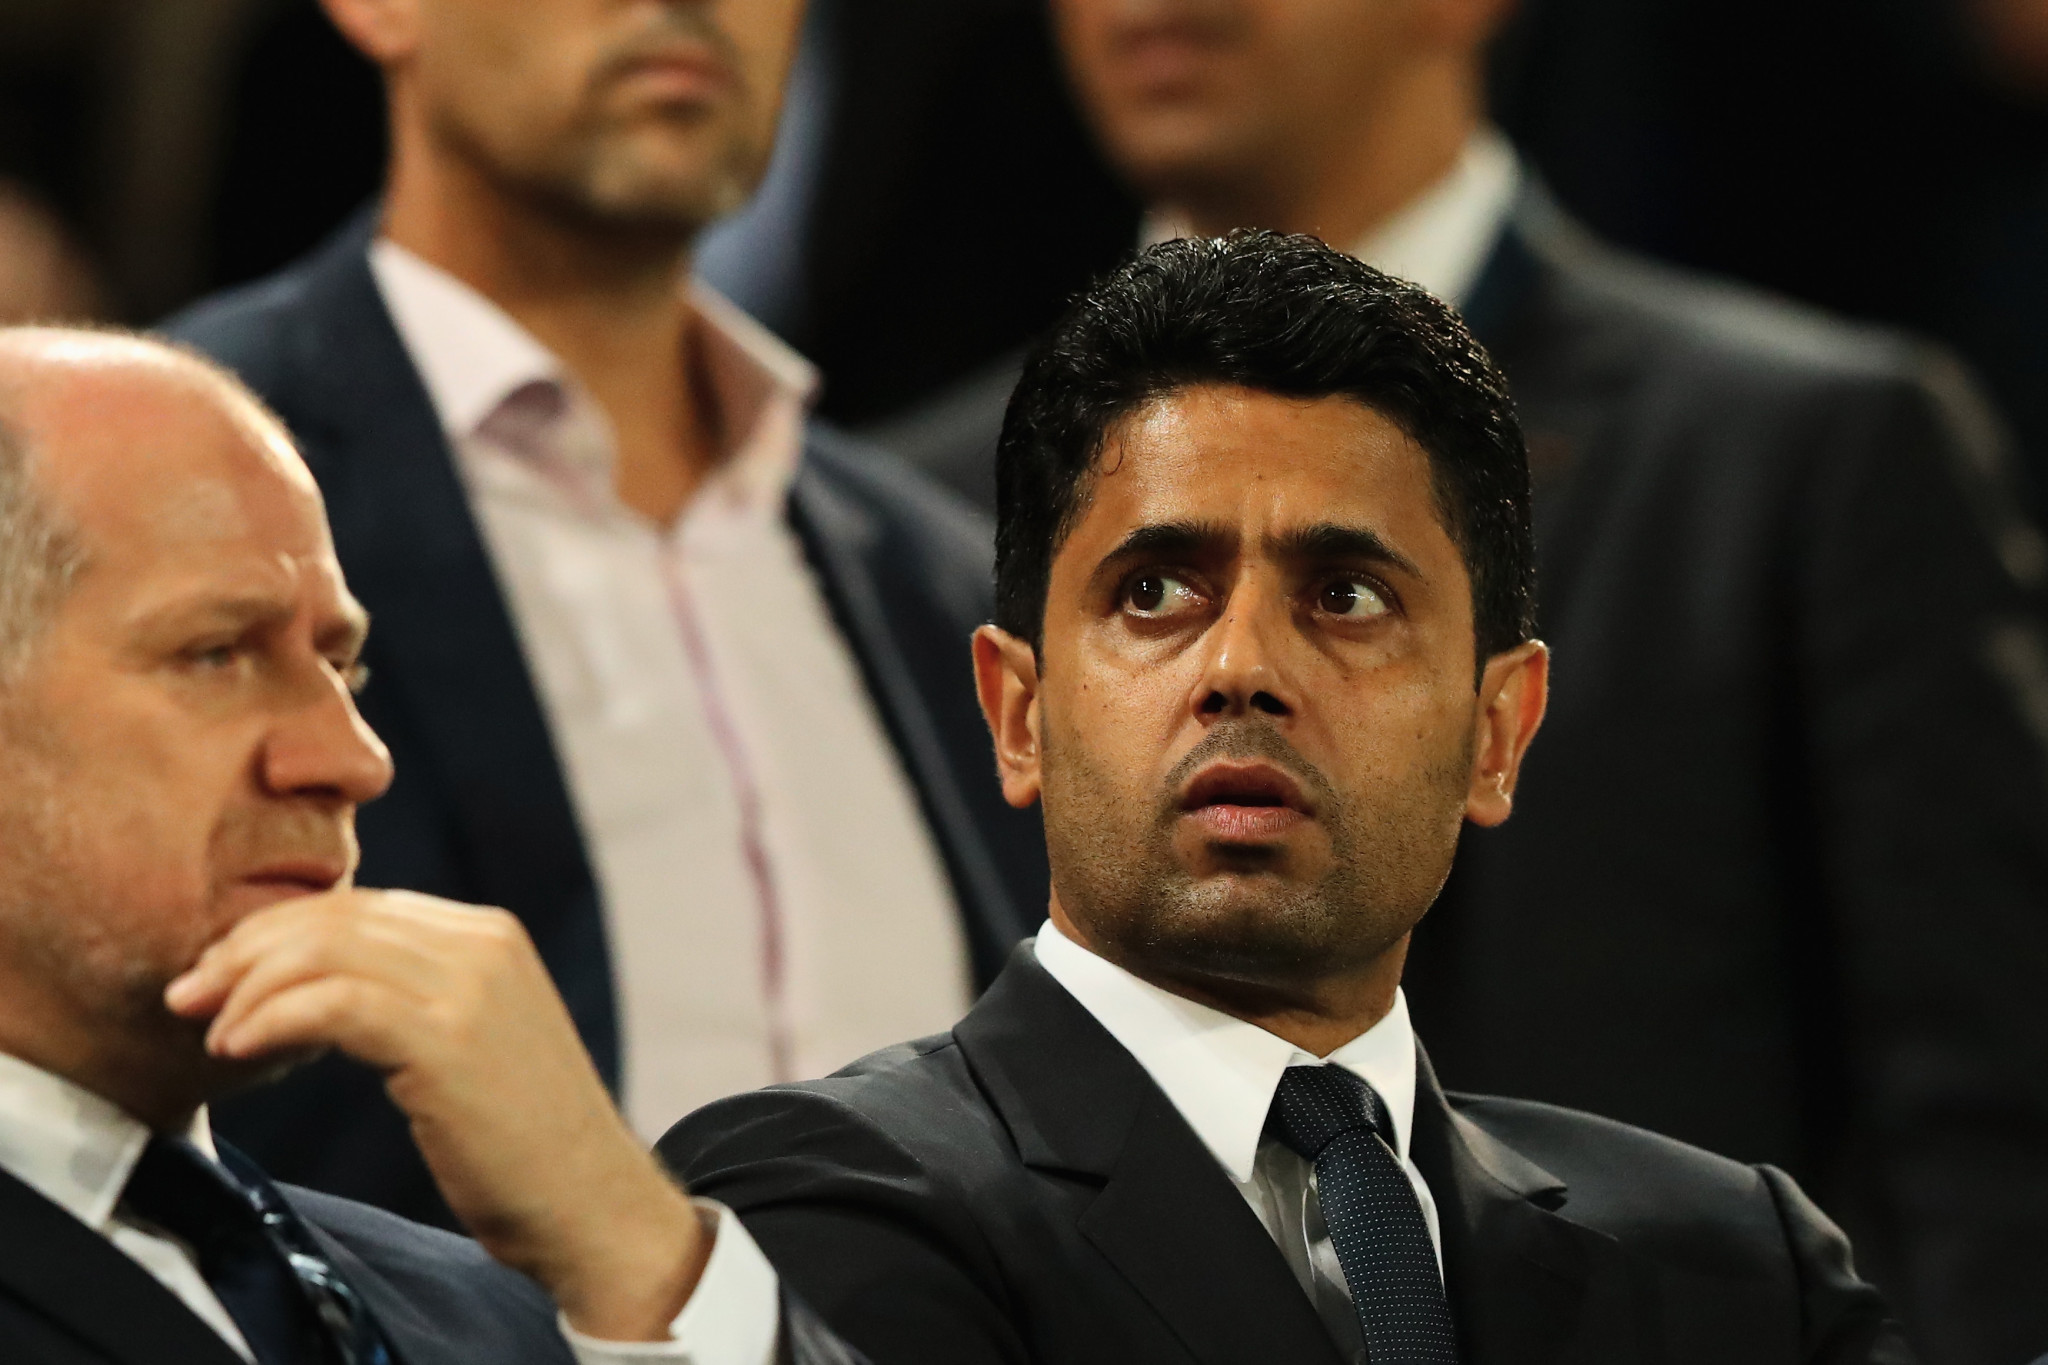 Al-Khelaifi to be questioned by Swiss prosecutors about Qatar 2022 rights investigation